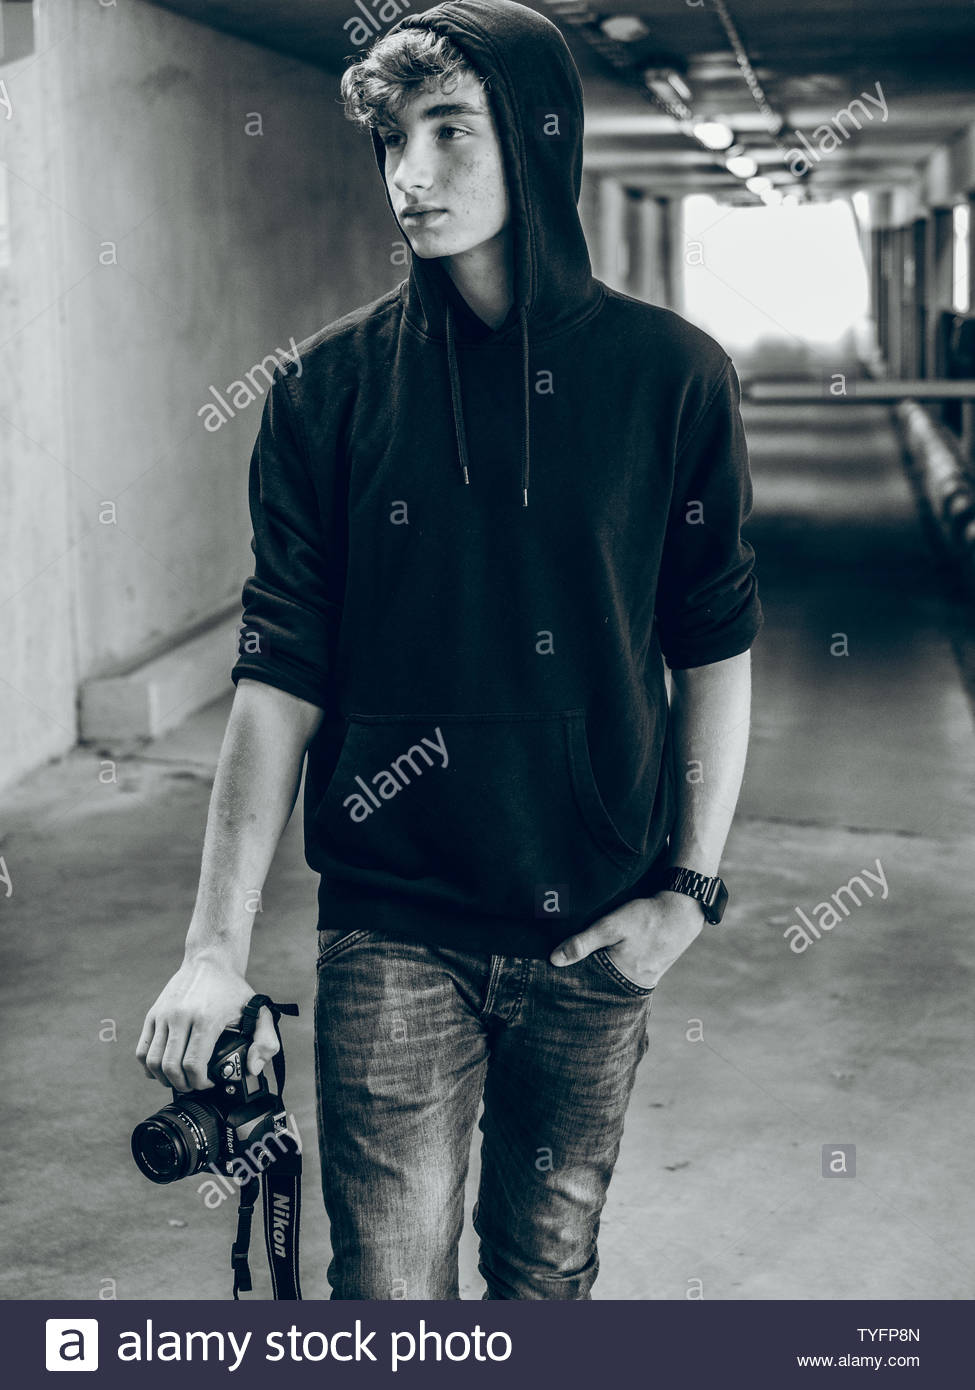 Medium shot BW young man with hoody holding camera in underground parking - Stock Image